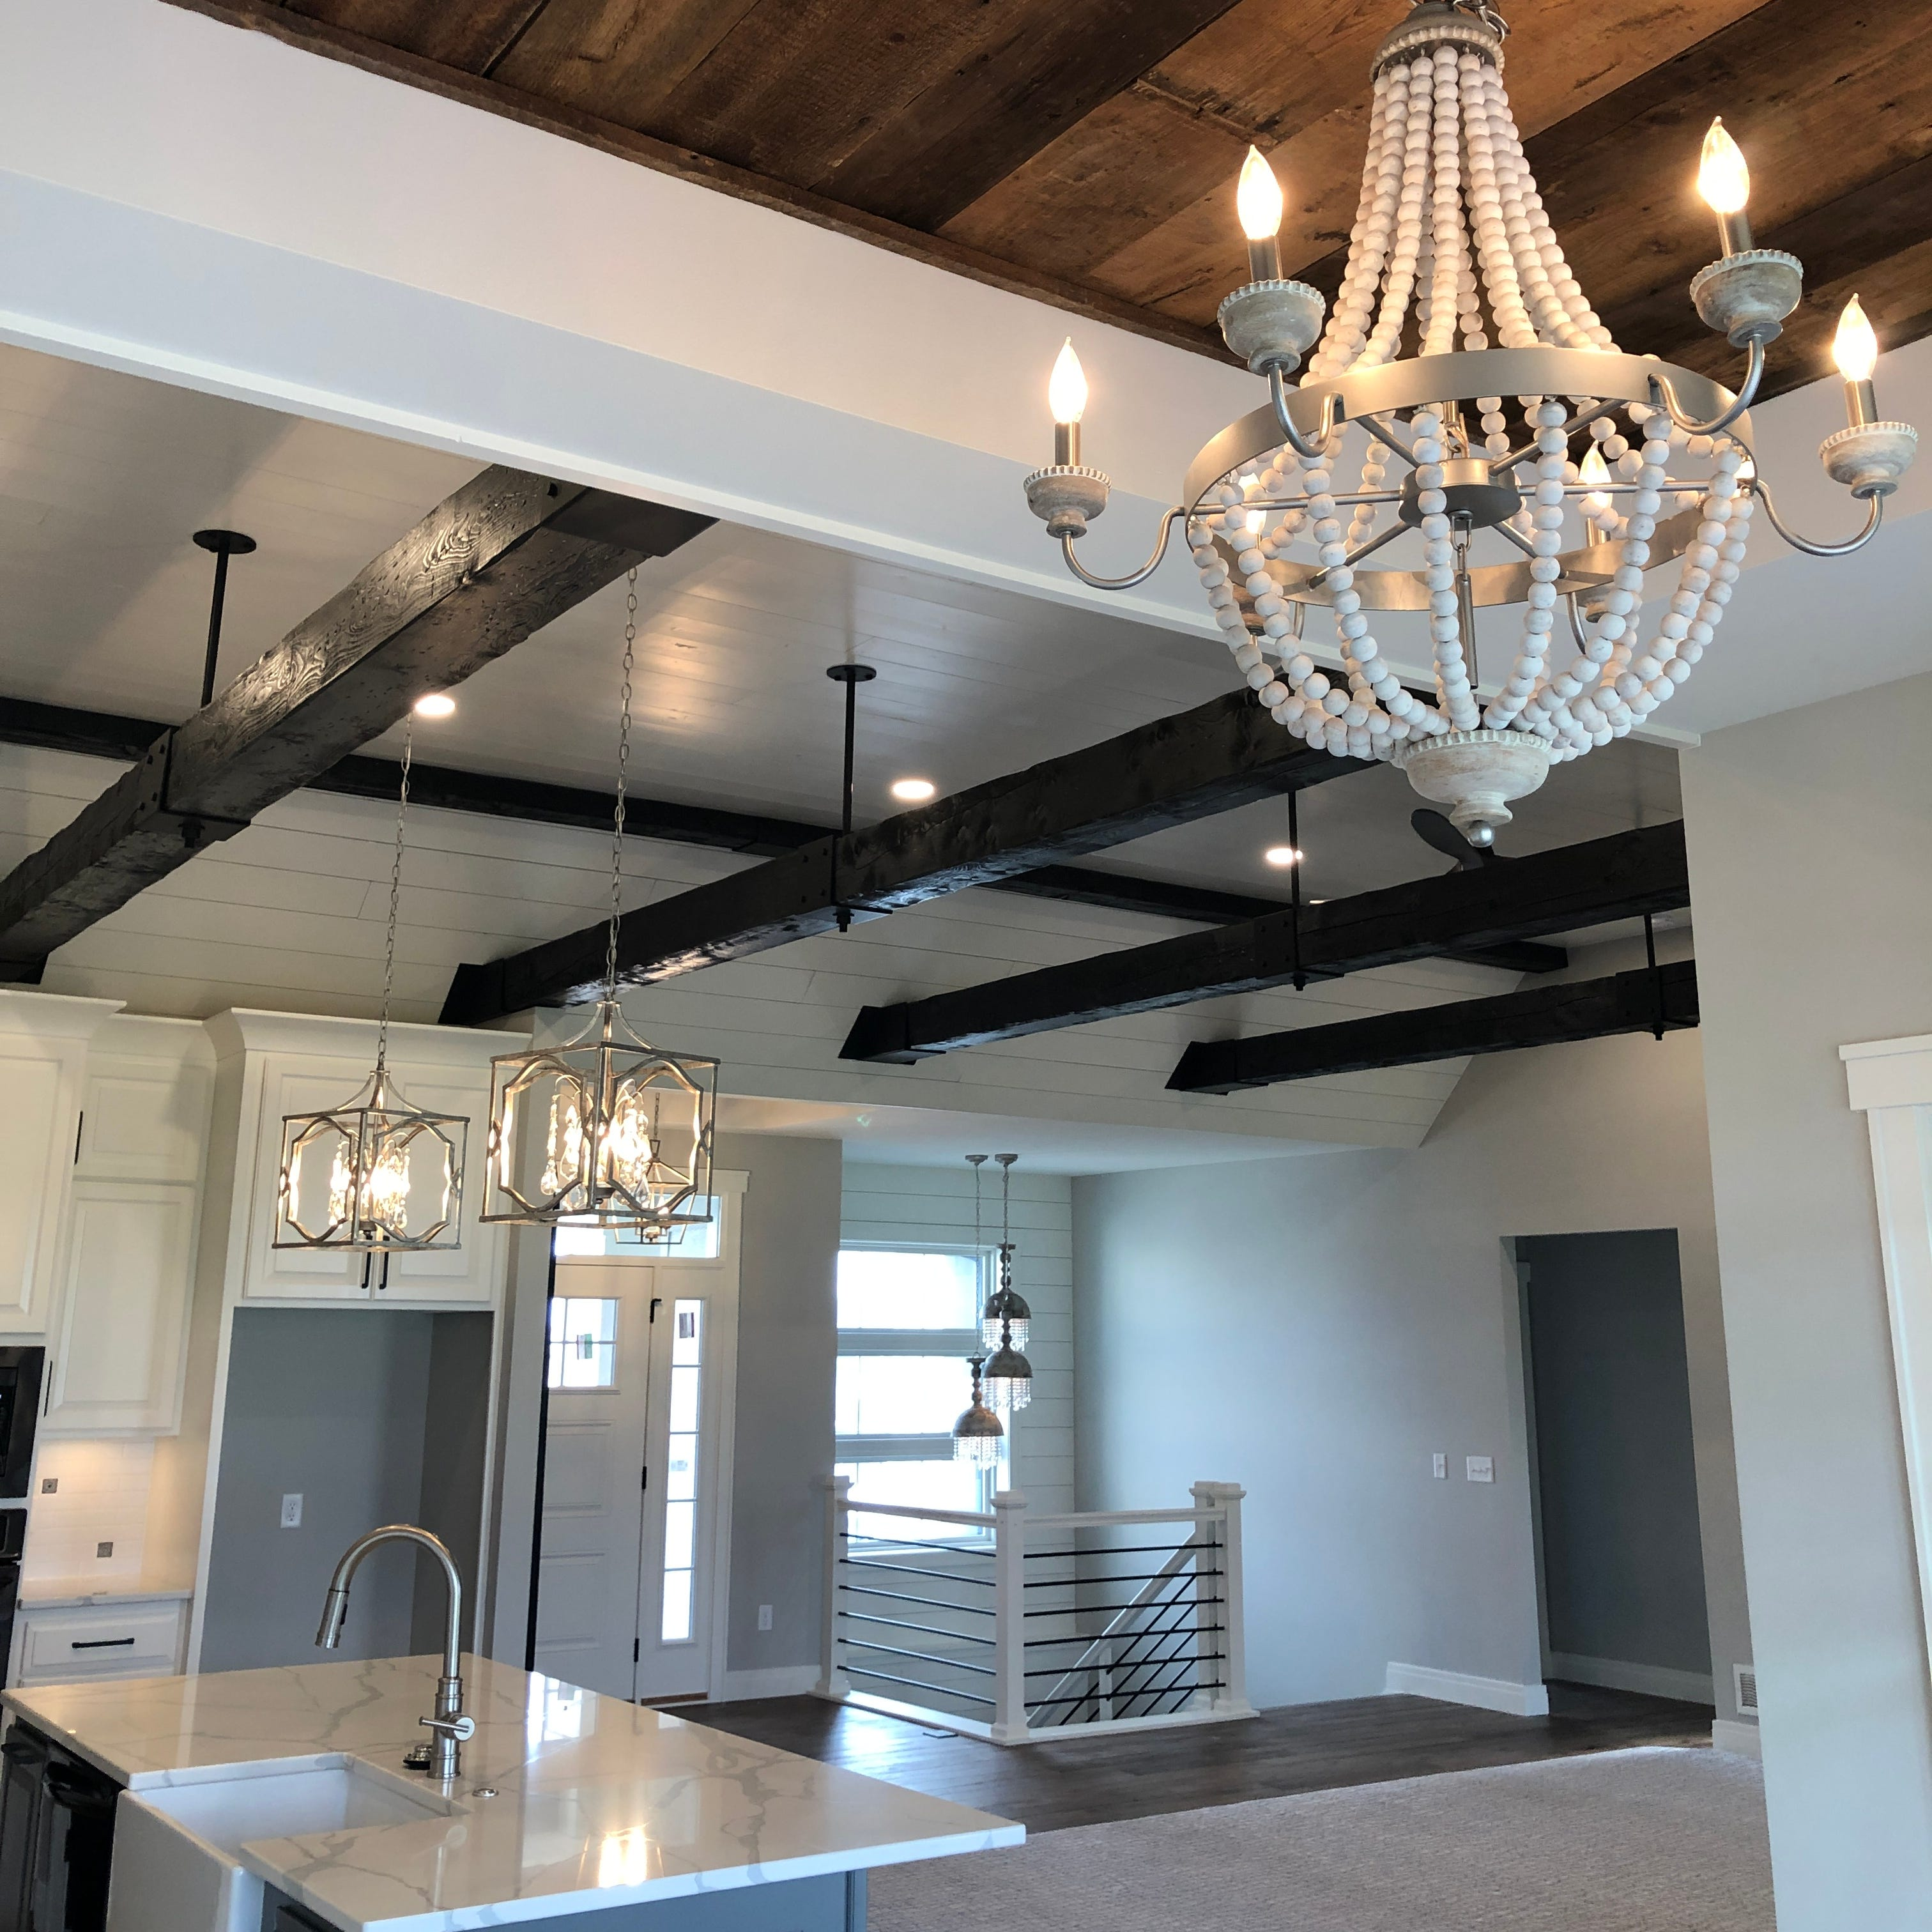 HBASE names 11 winning homes in 2019 Spring Parade of Homes